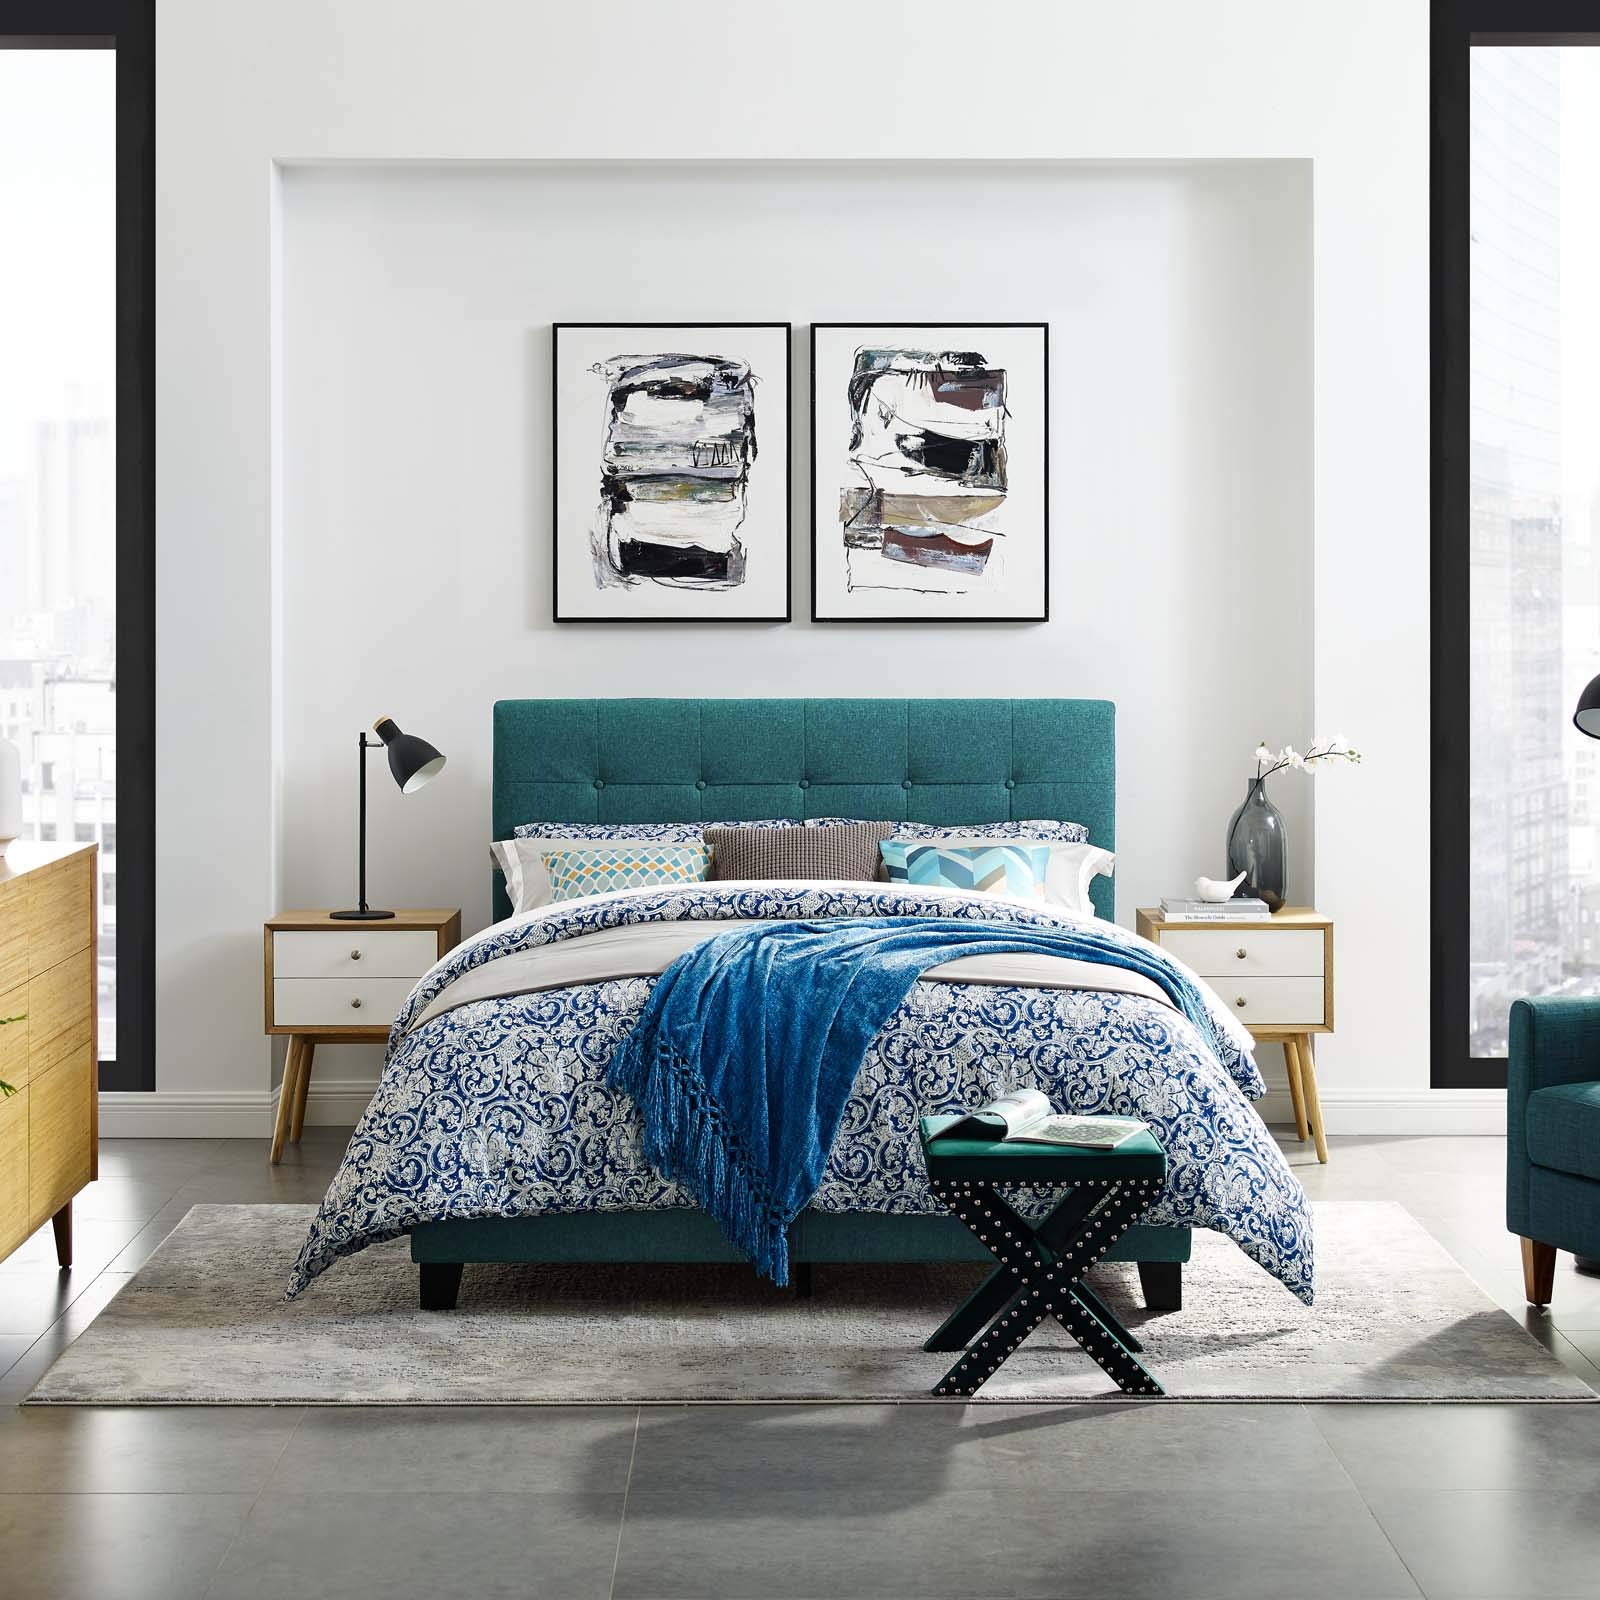 Modway Amira Mid-Century Modern Upholstered Fabric Tufted King Bed Frame With Headboard In Teal by Modway